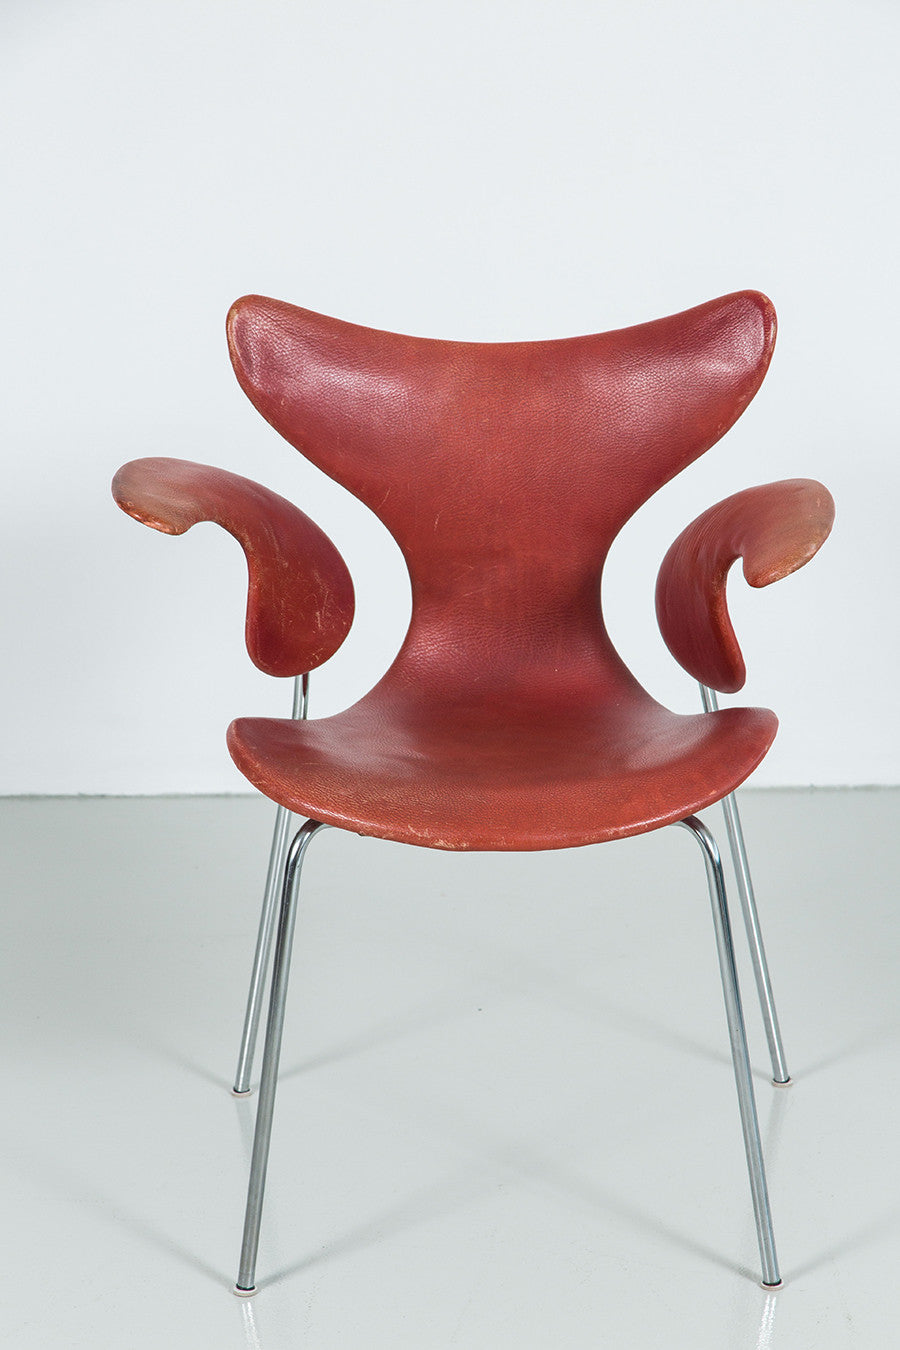 jacobsen furniture. arne jacobsen furniture h